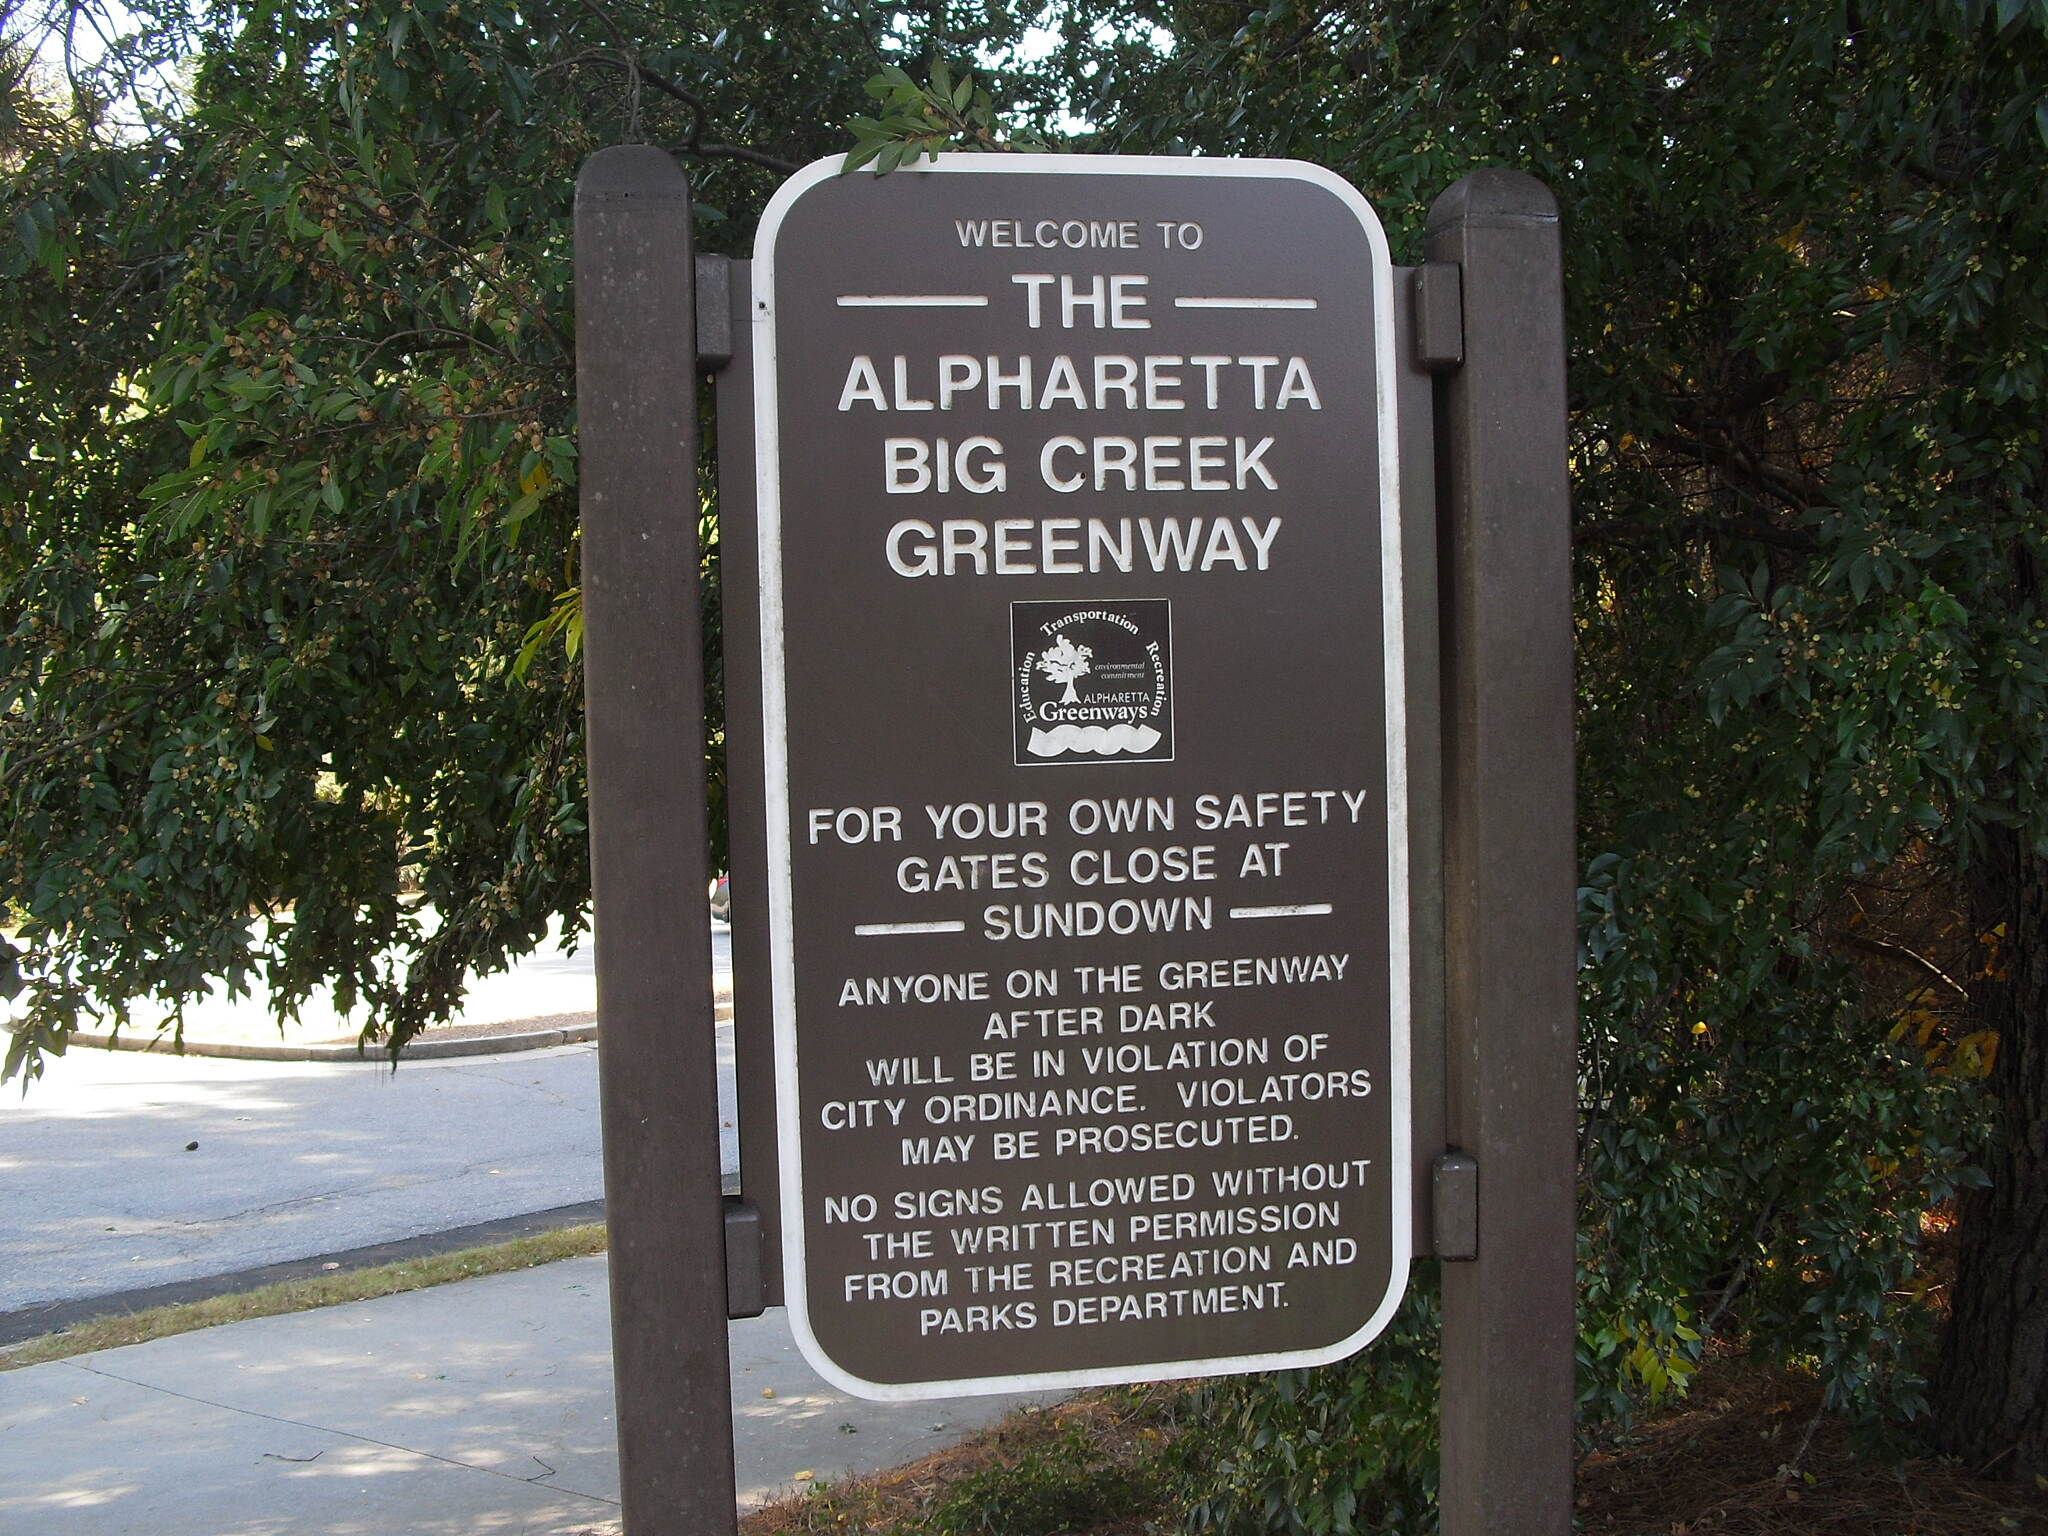 Big Creek Greenway Big Creek Greenway Parking area sign in Alpharetta